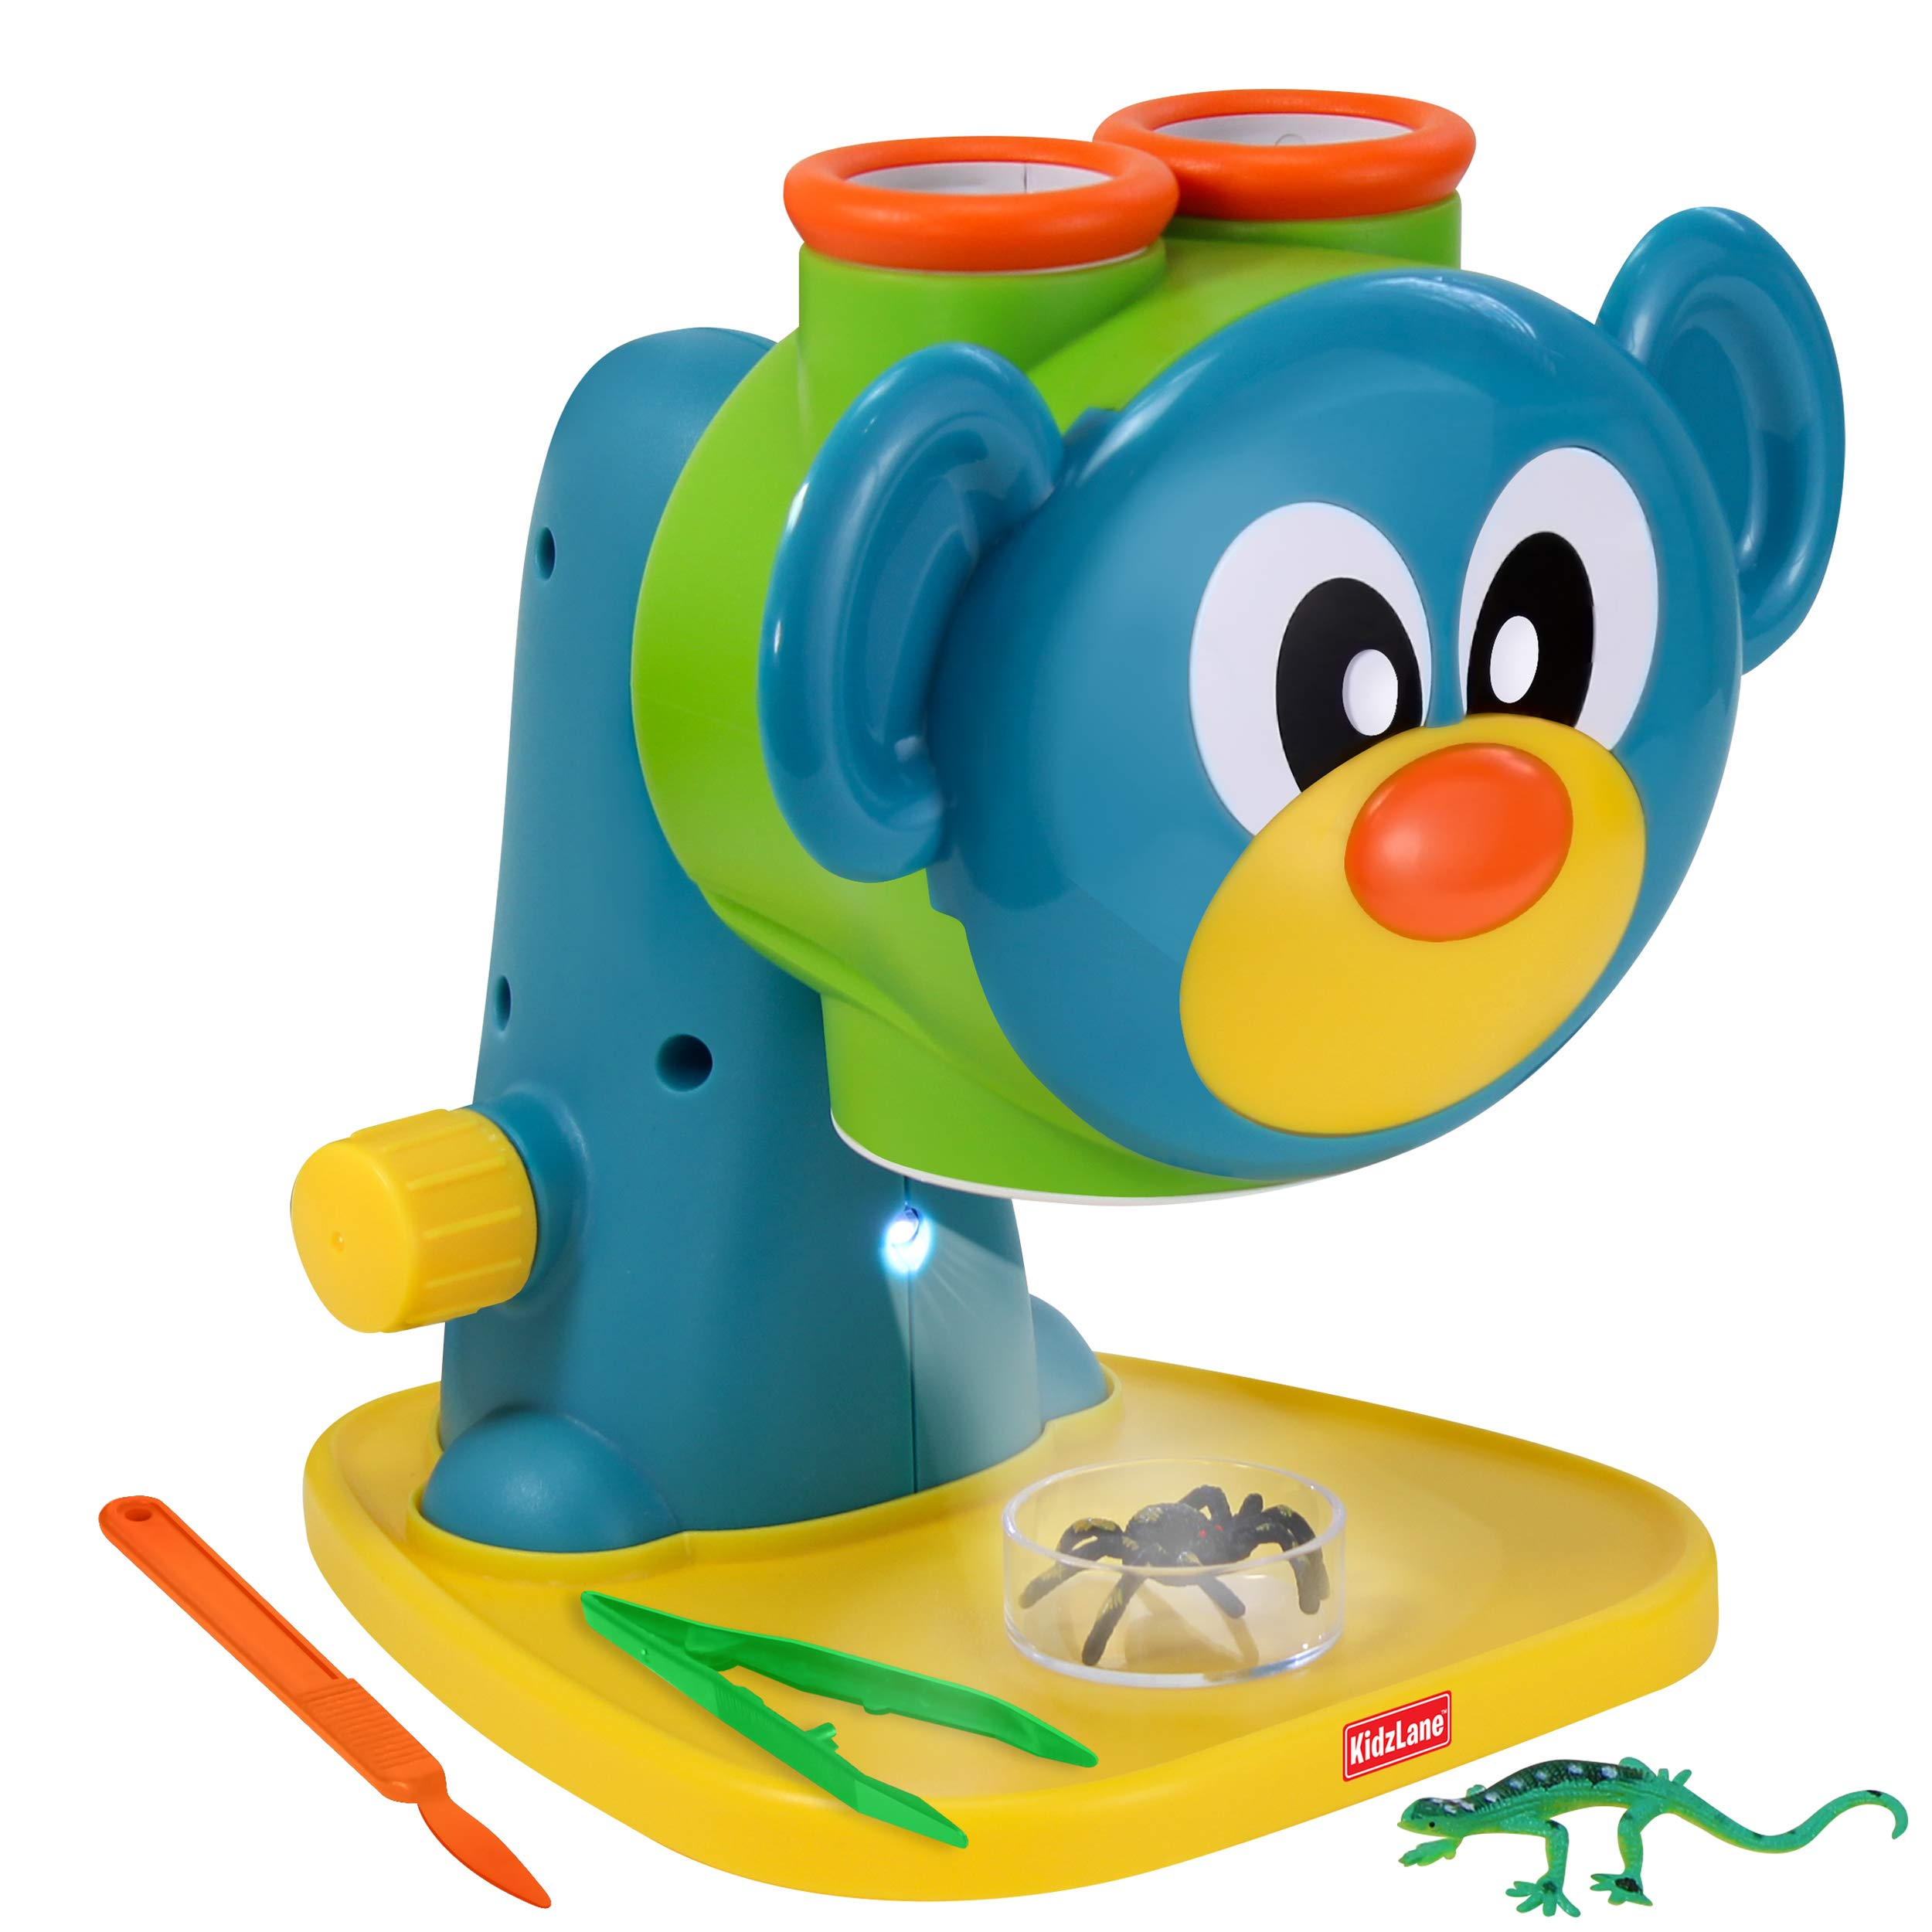 Kidzlane Microscope Science Toy for Kids - Toddler Preschool Microscope with Guide & Activity Booklet by Kidzlane